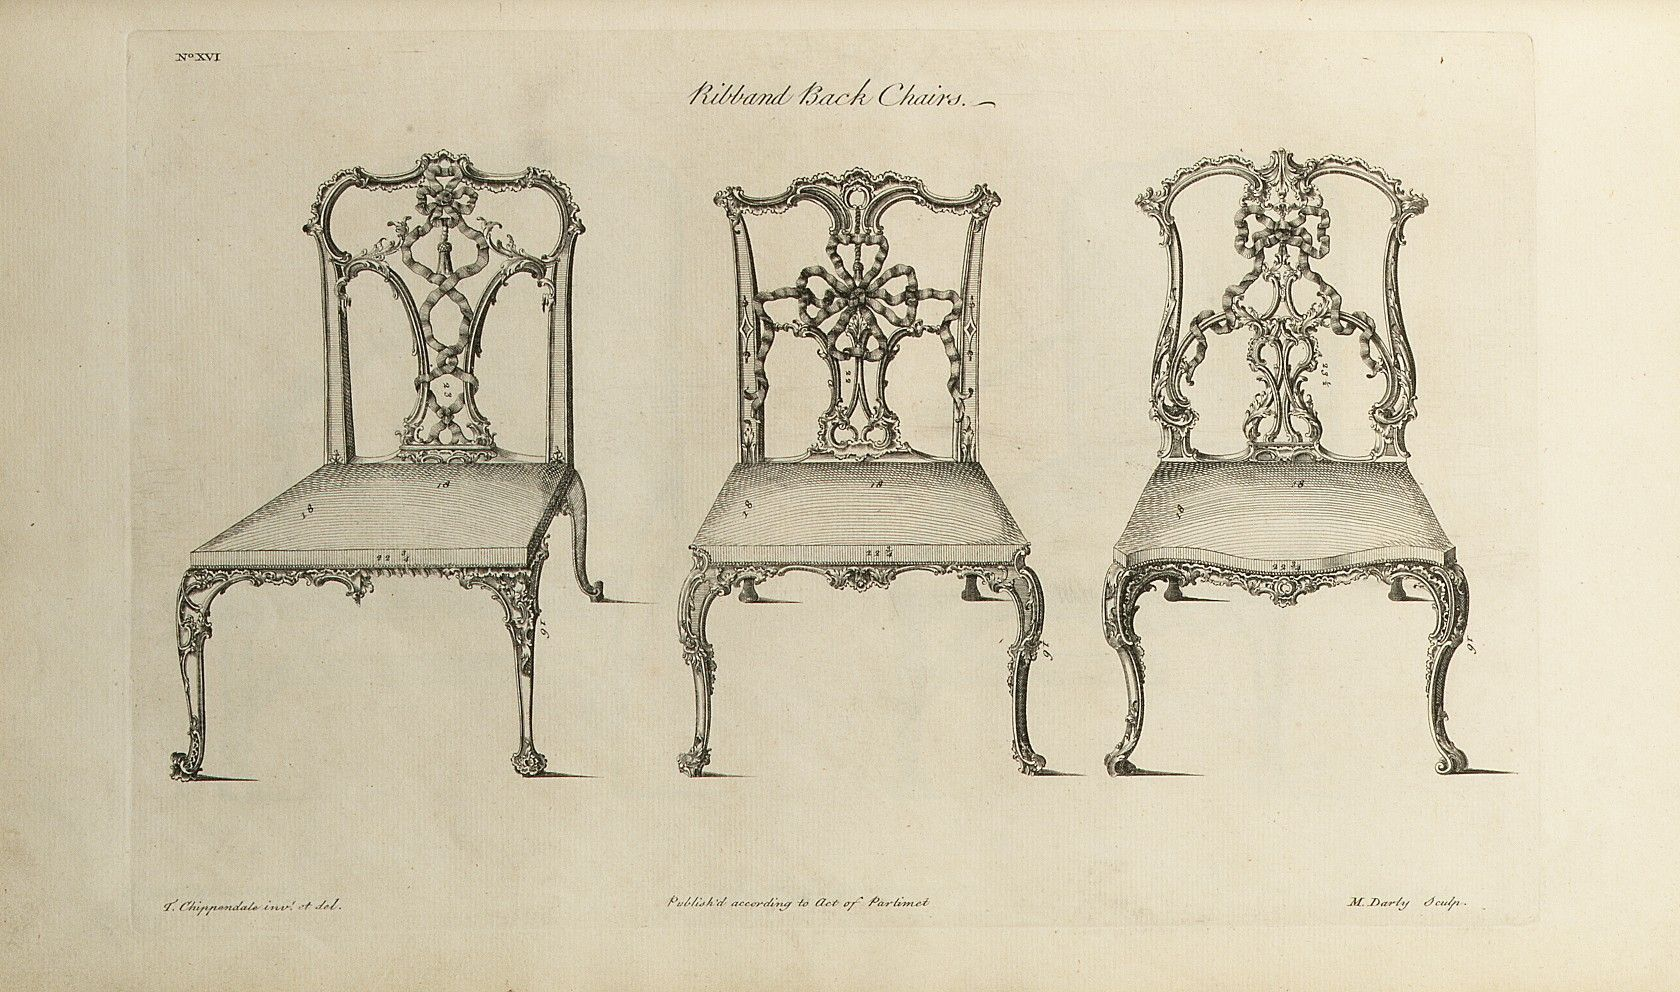 Ribband back chairs, from 'The Gentleman and Cabinet-maker's Director' by Thomas Chippendale, 1754